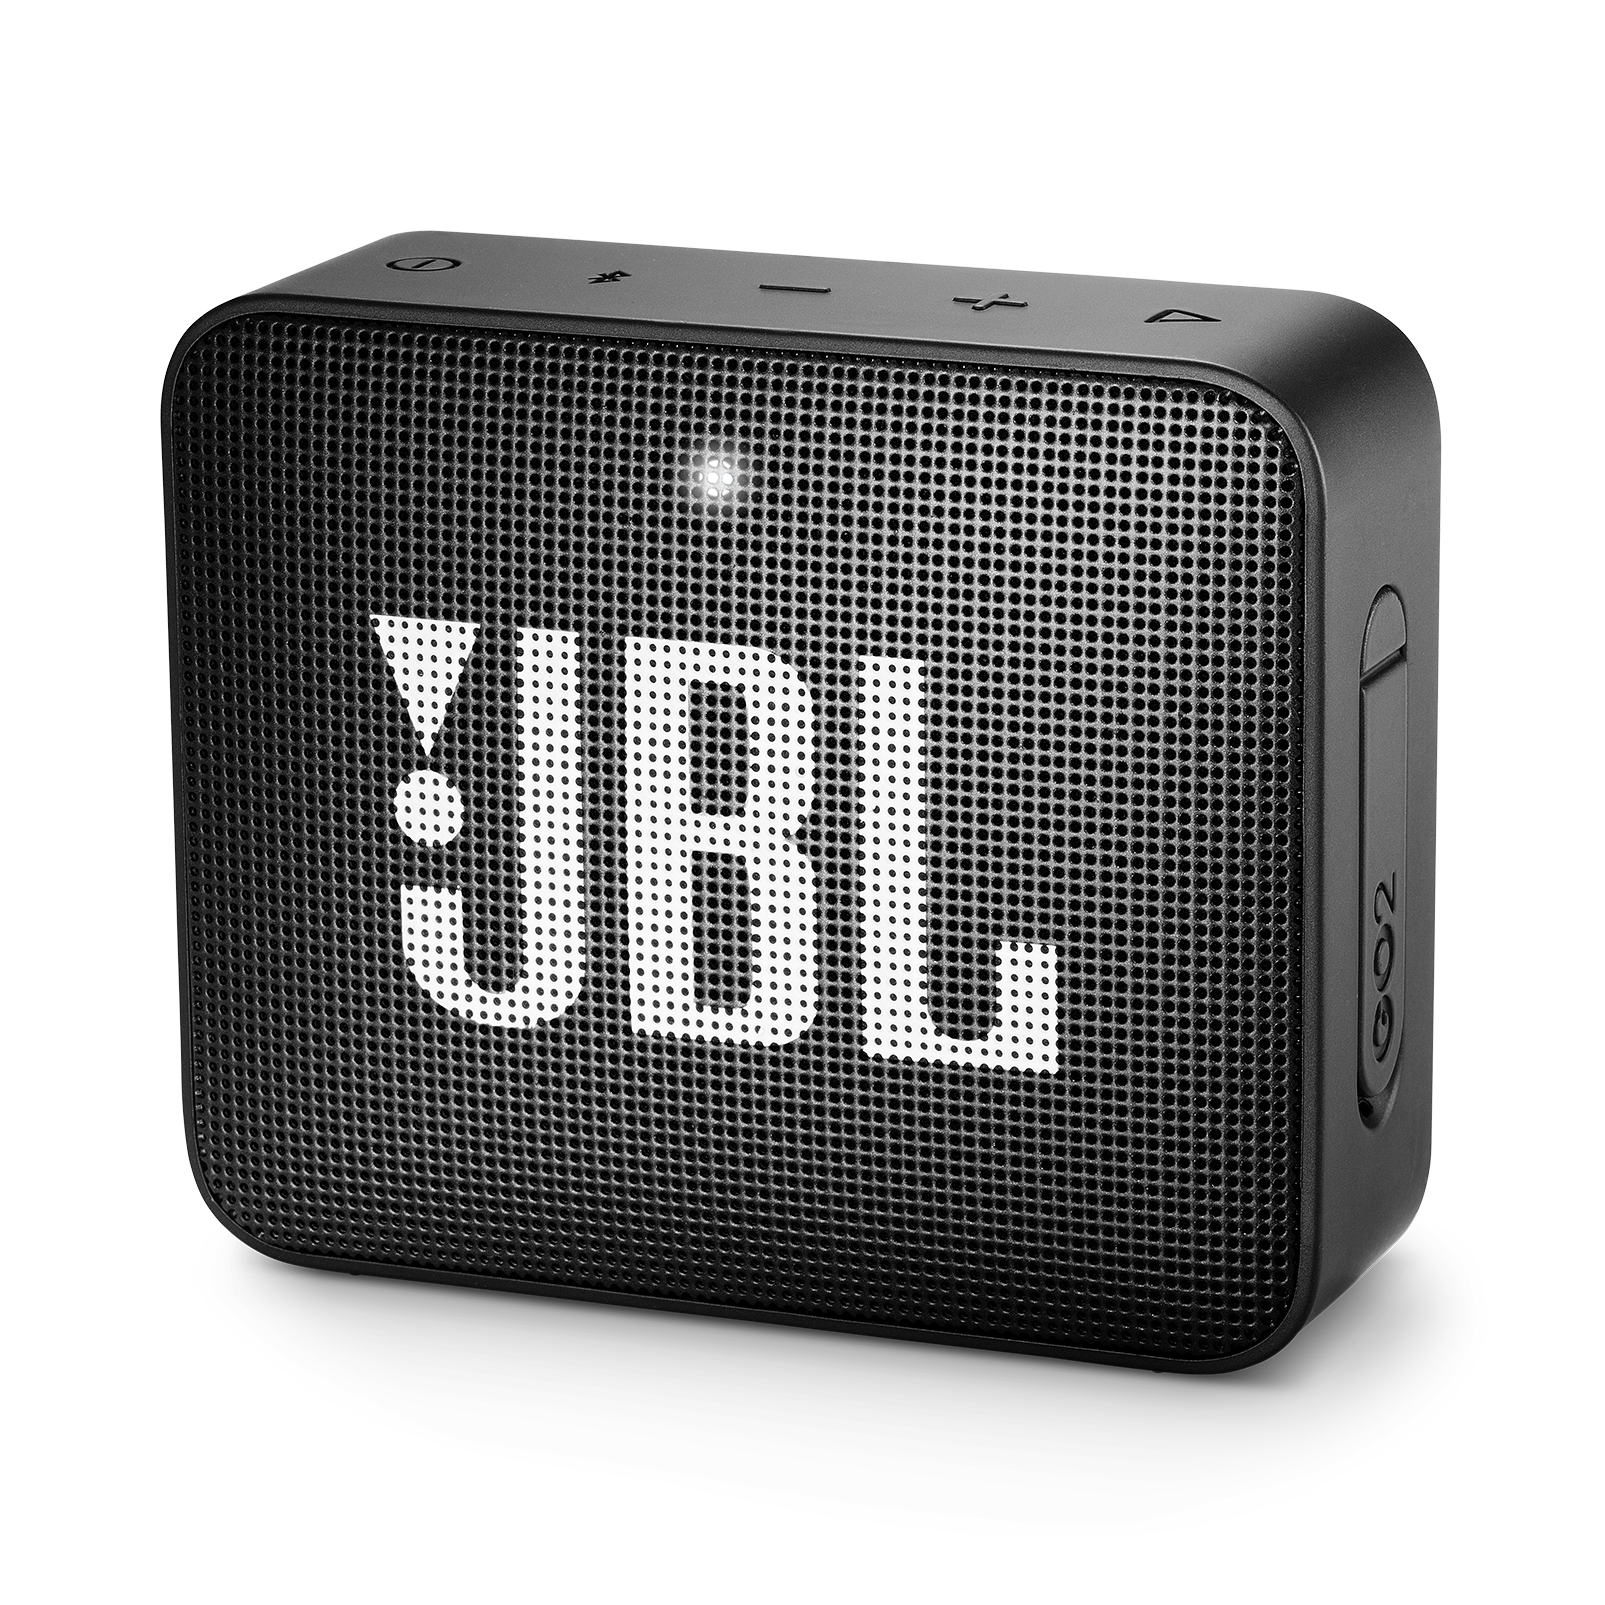 jbl go 2 portable bluetooth speaker. Black Bedroom Furniture Sets. Home Design Ideas